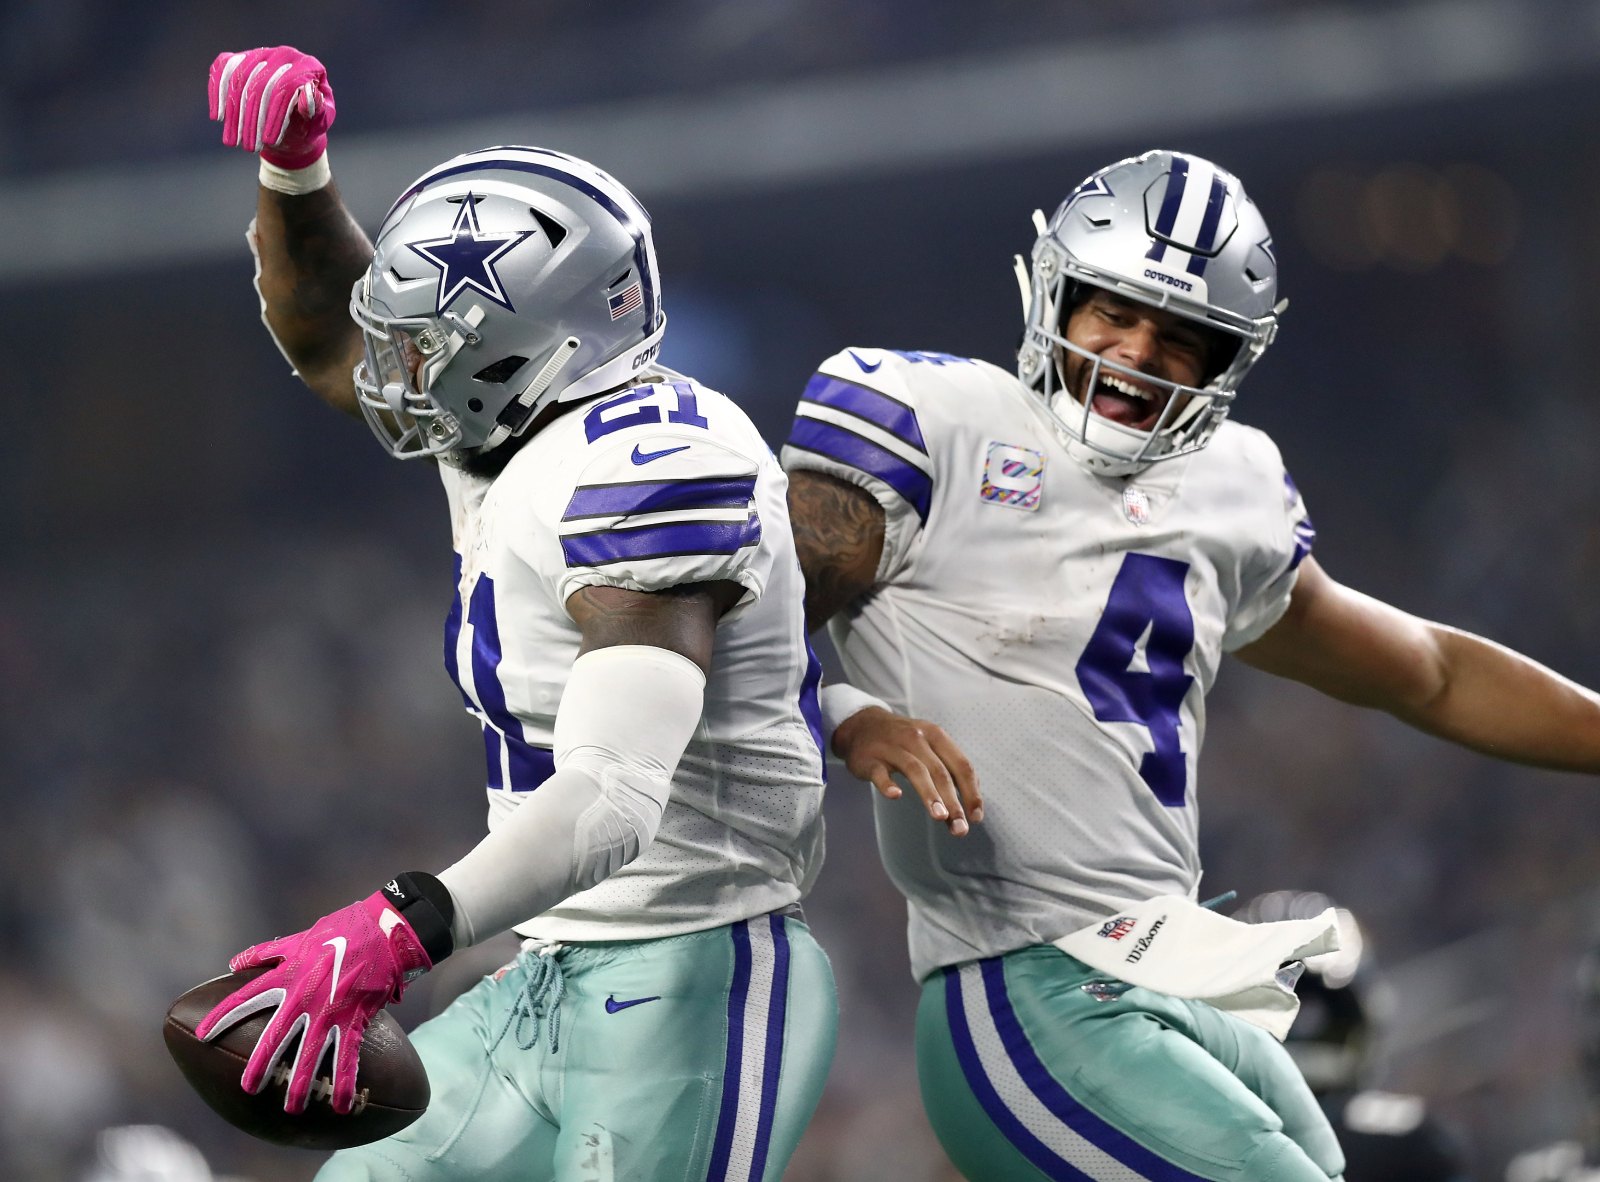 Dak Prescott and Ezekiel Elliott are two of the best players in the NFL for the Dallas Cowboys. Are they friends off the field?